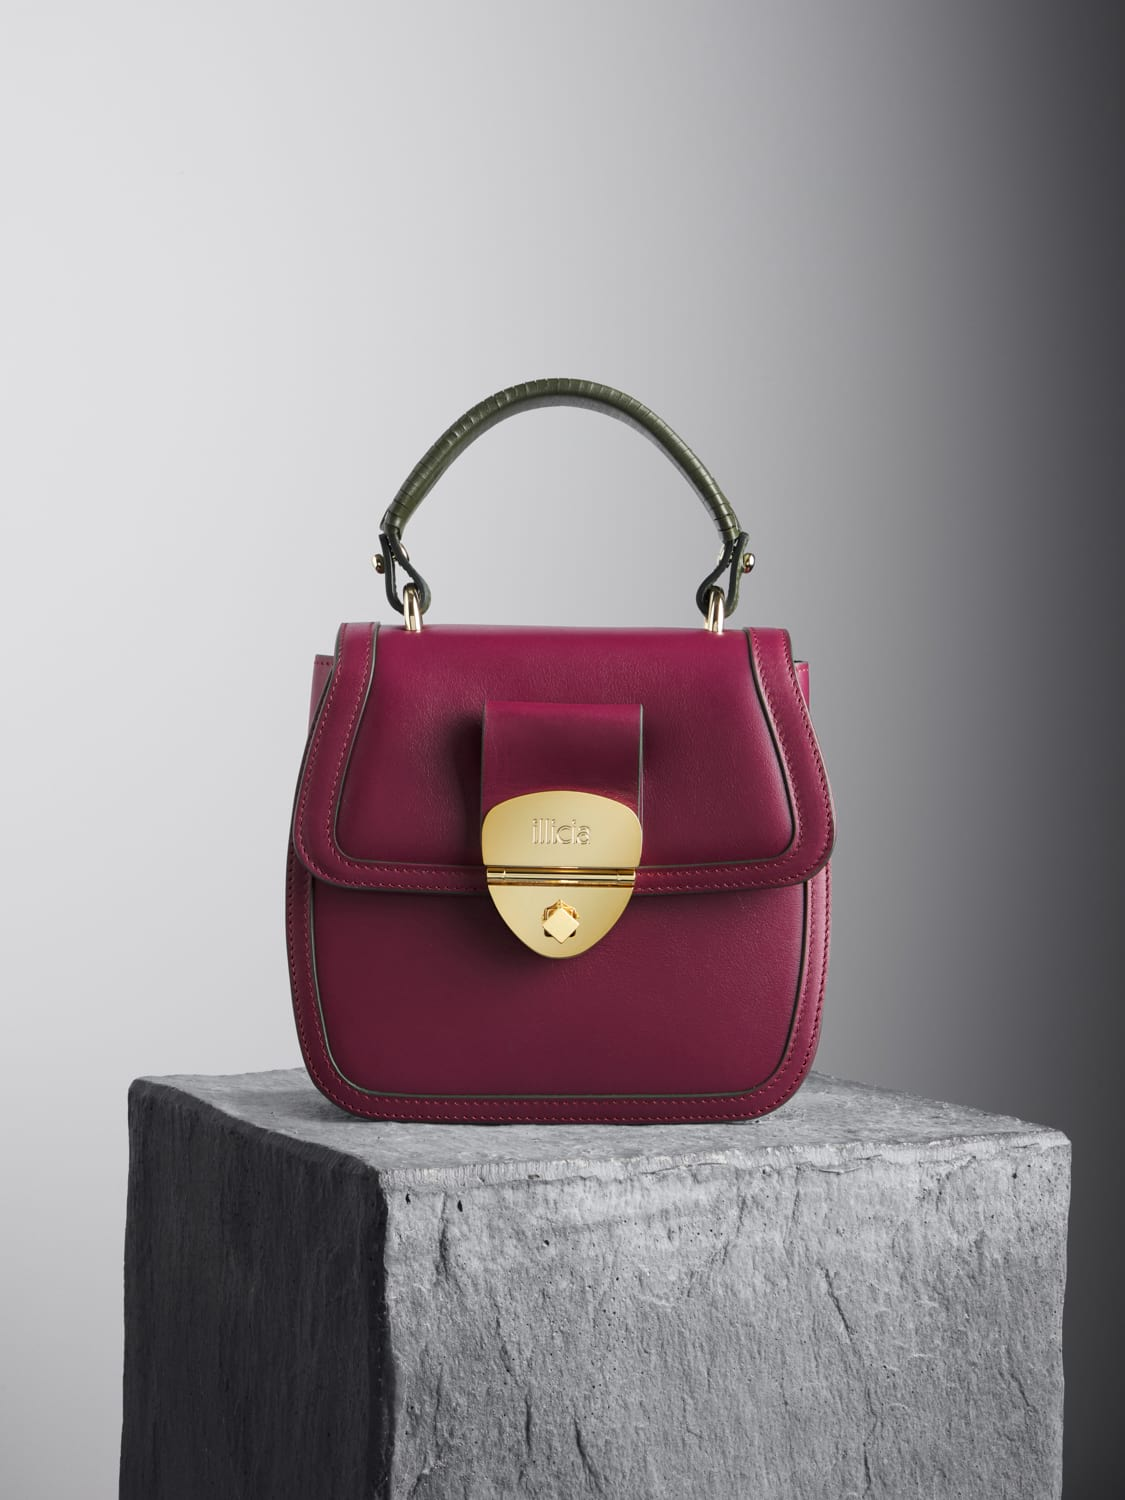 Oxblood Grace Top Handle Bag with kale braided handle, illicia